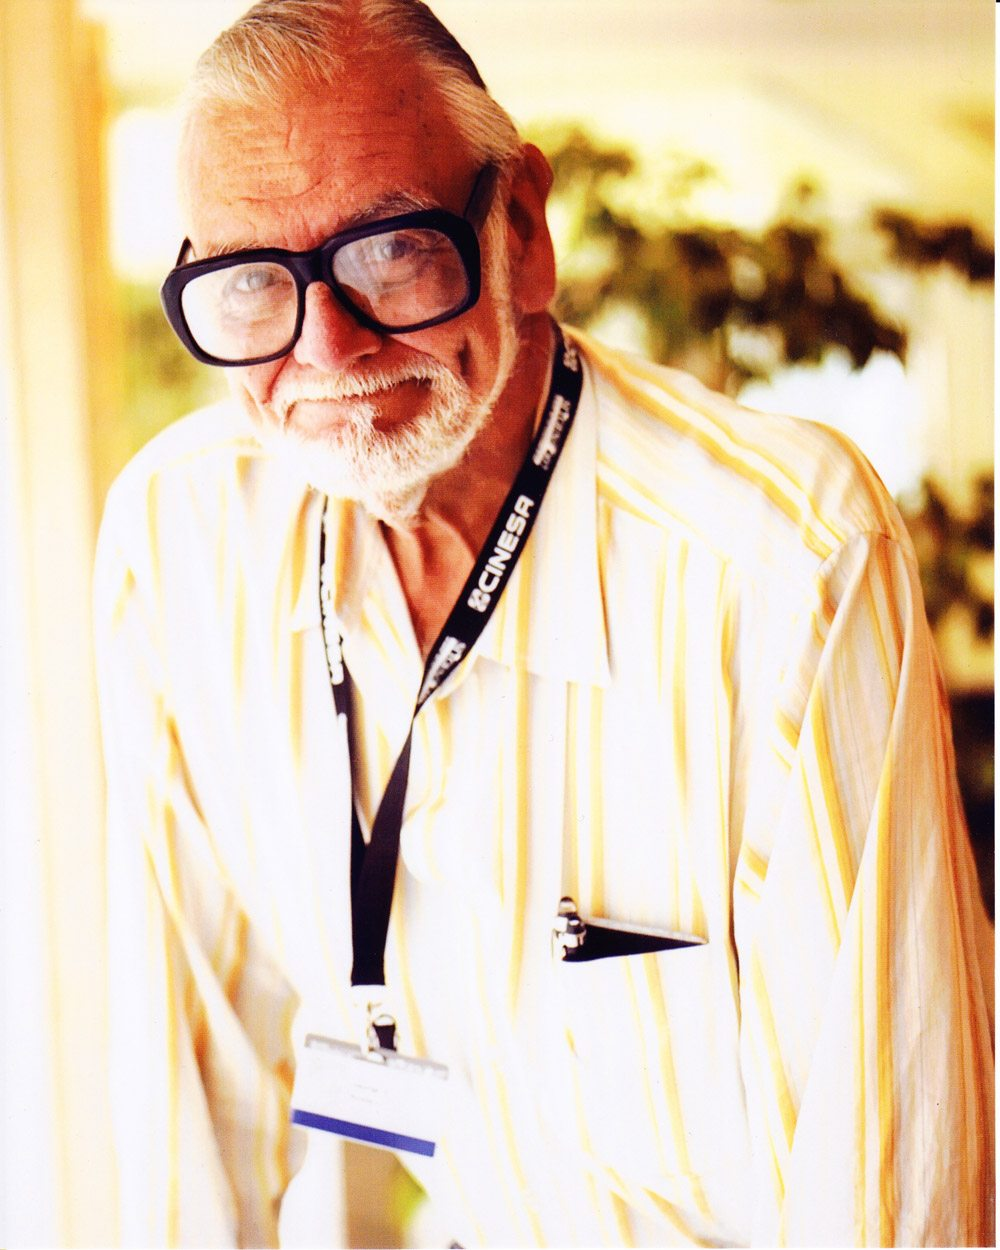 George A Romero 2 - Help George A. Romero Get His Beyond Deserved Star on the Hollywood Walk of Fame